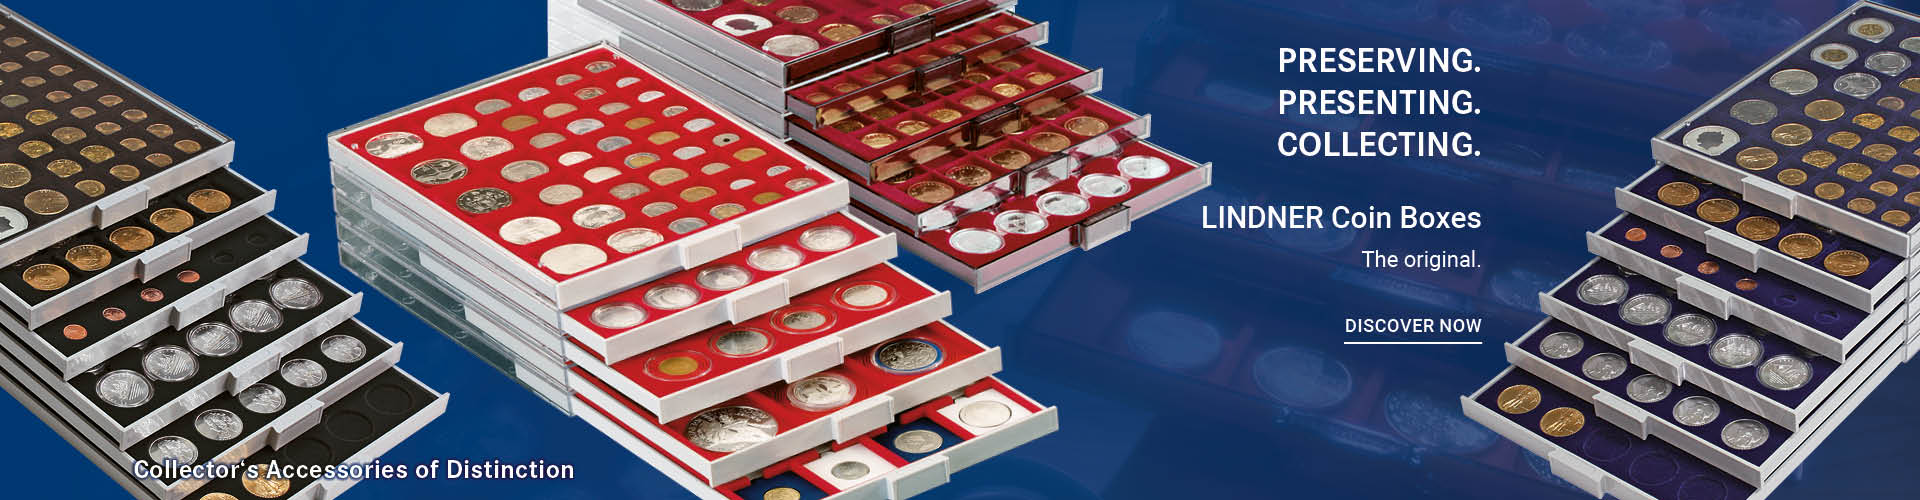 LINDNER COIN BOXES